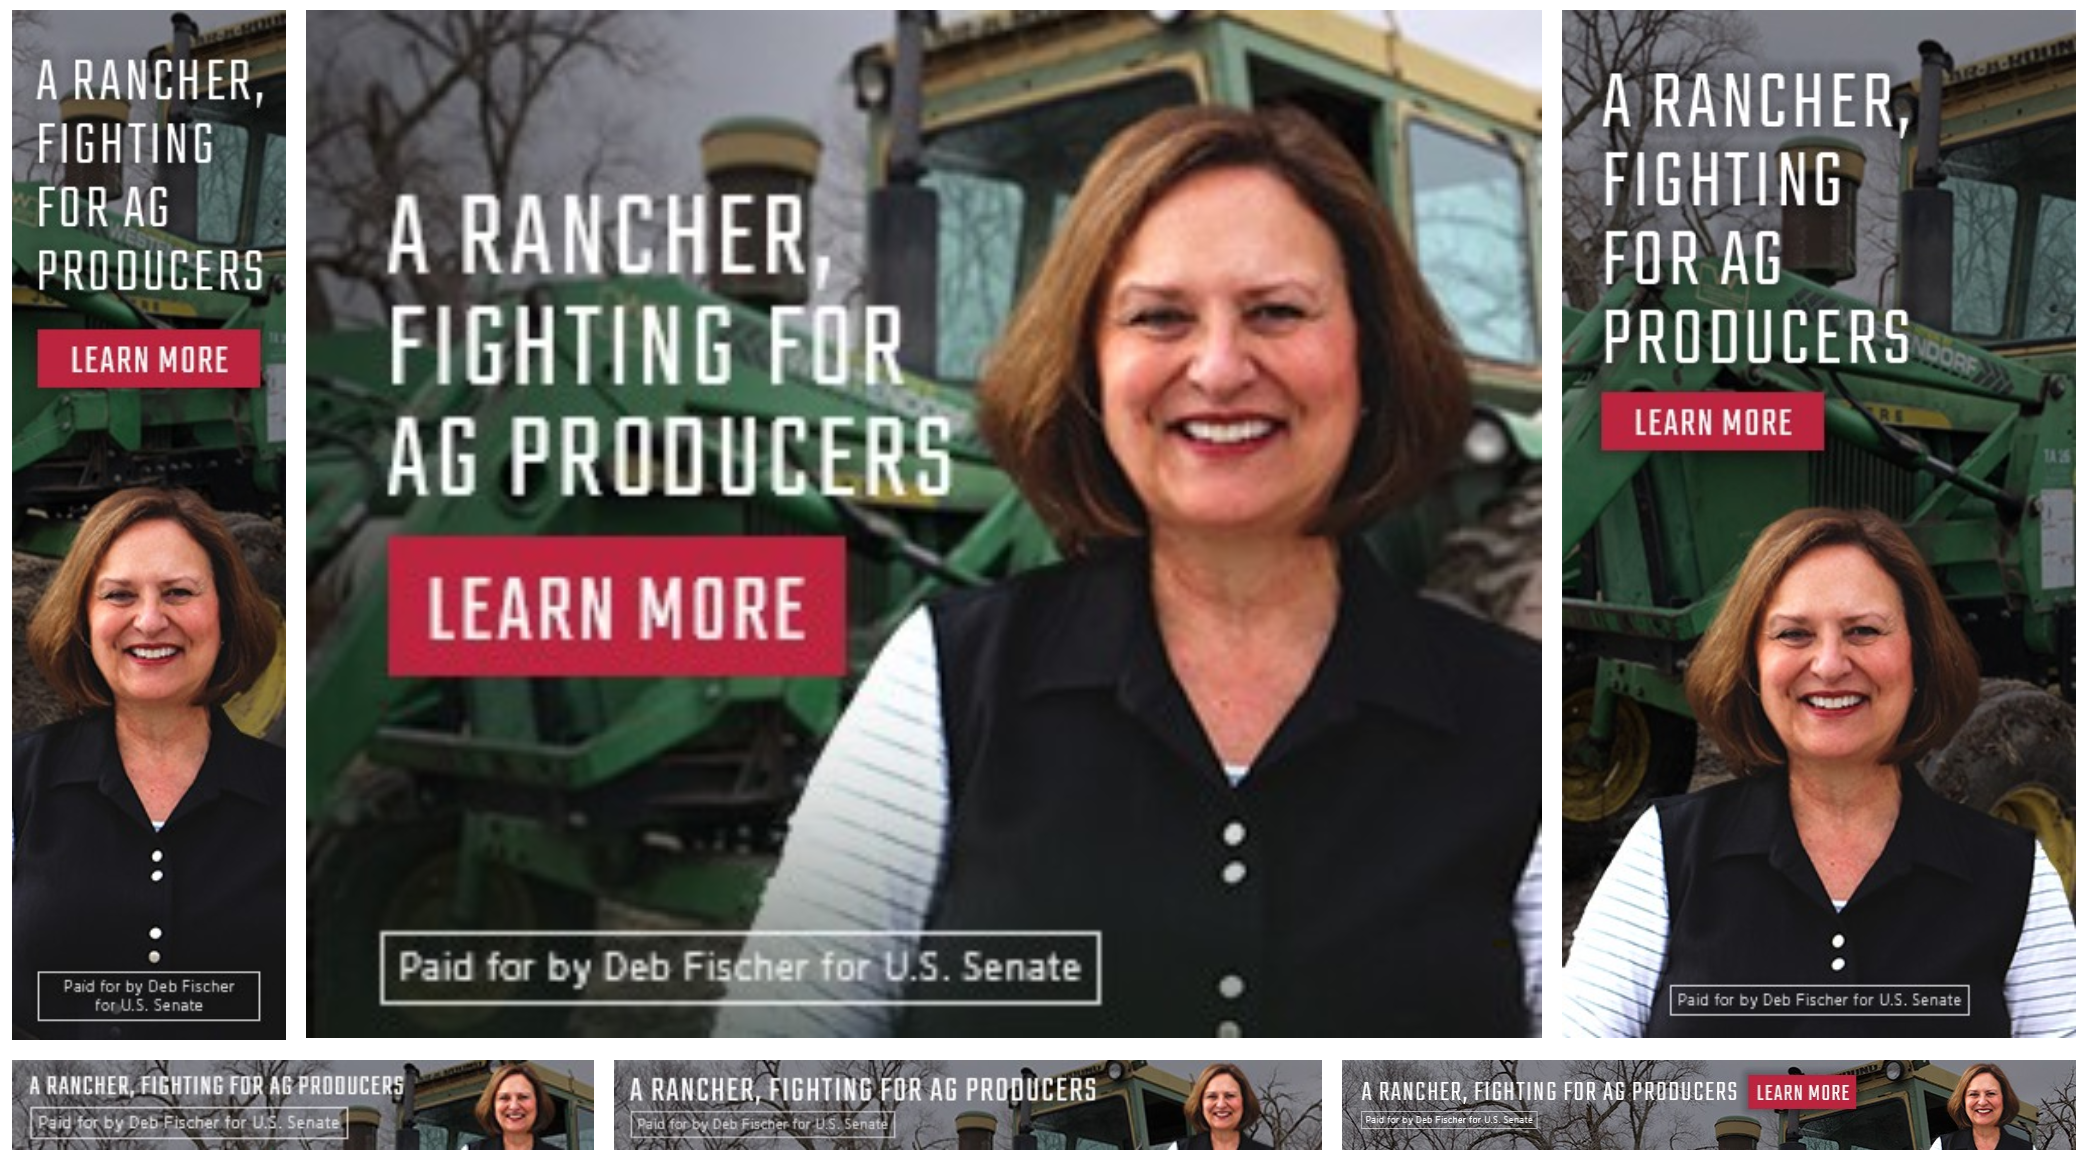 Ads: Rancher, Fighting for Ag Producers